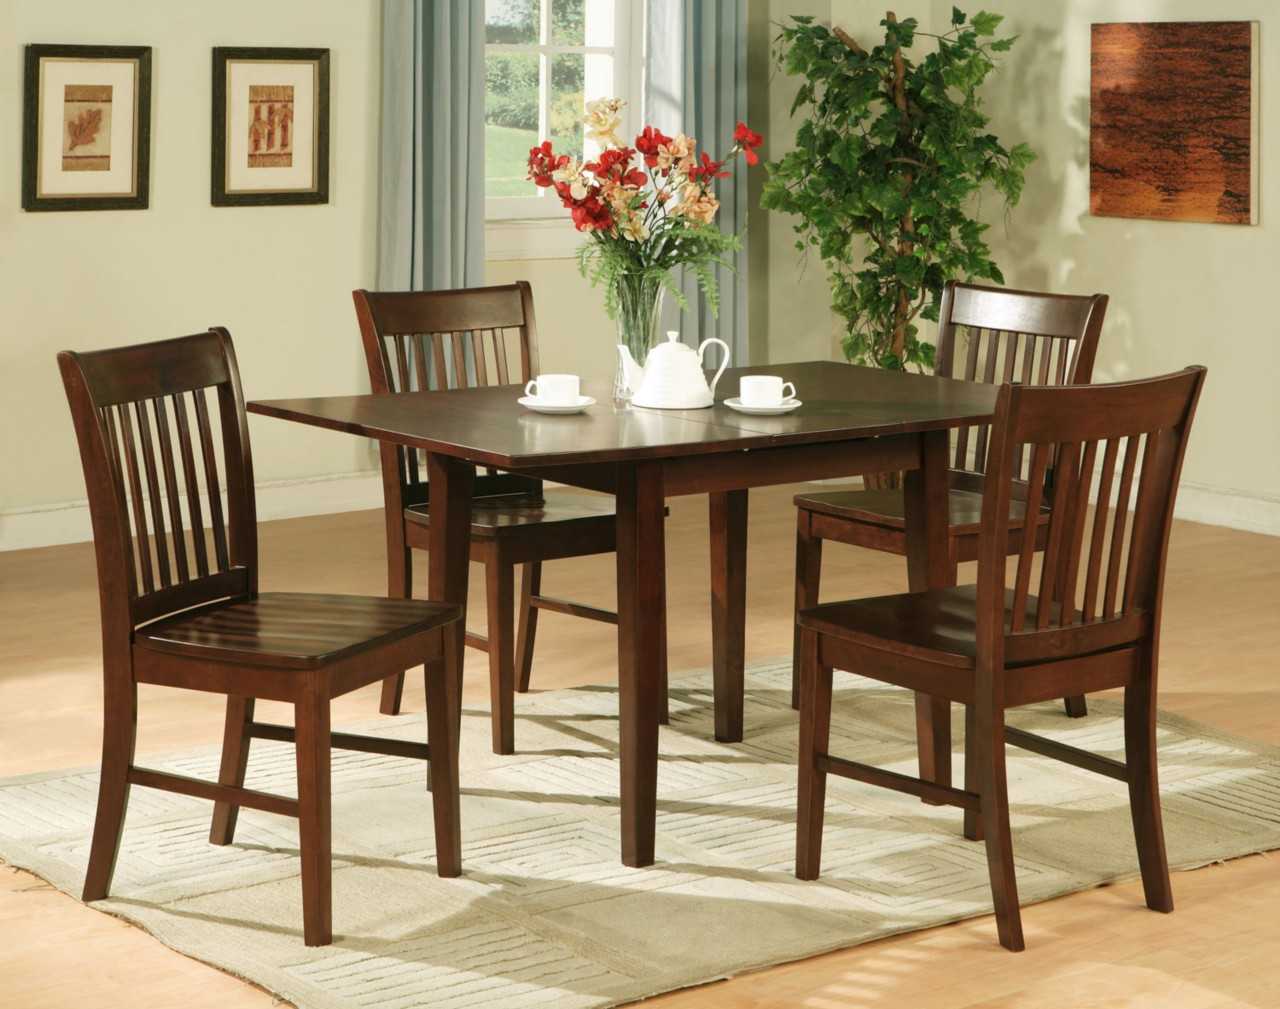 5pc rectangular kitchen dinette table 4 chairs mahogany ebay for Kitchen table and chairs